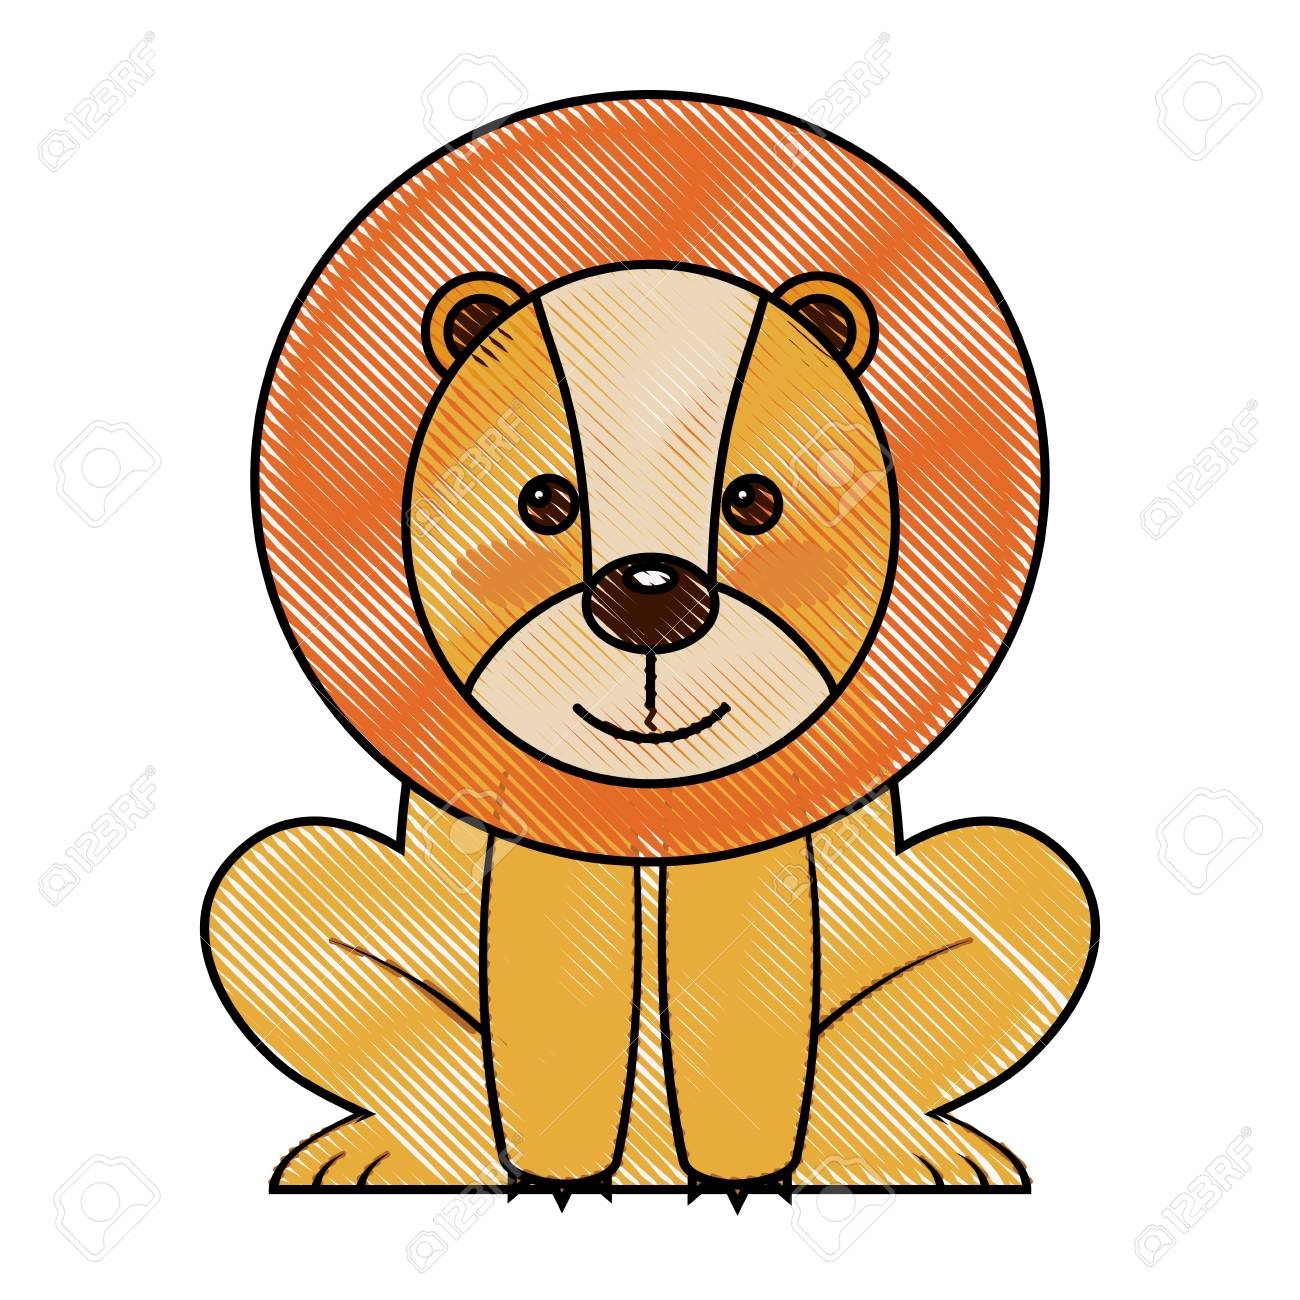 Image of: Cartoon Cute Lion Sit African Animal Zoo Vector Illustration Drawing Stock Vector 98874031 123rfcom Cute Lion Sit African Animal Zoo Vector Illustration Drawing Royalty